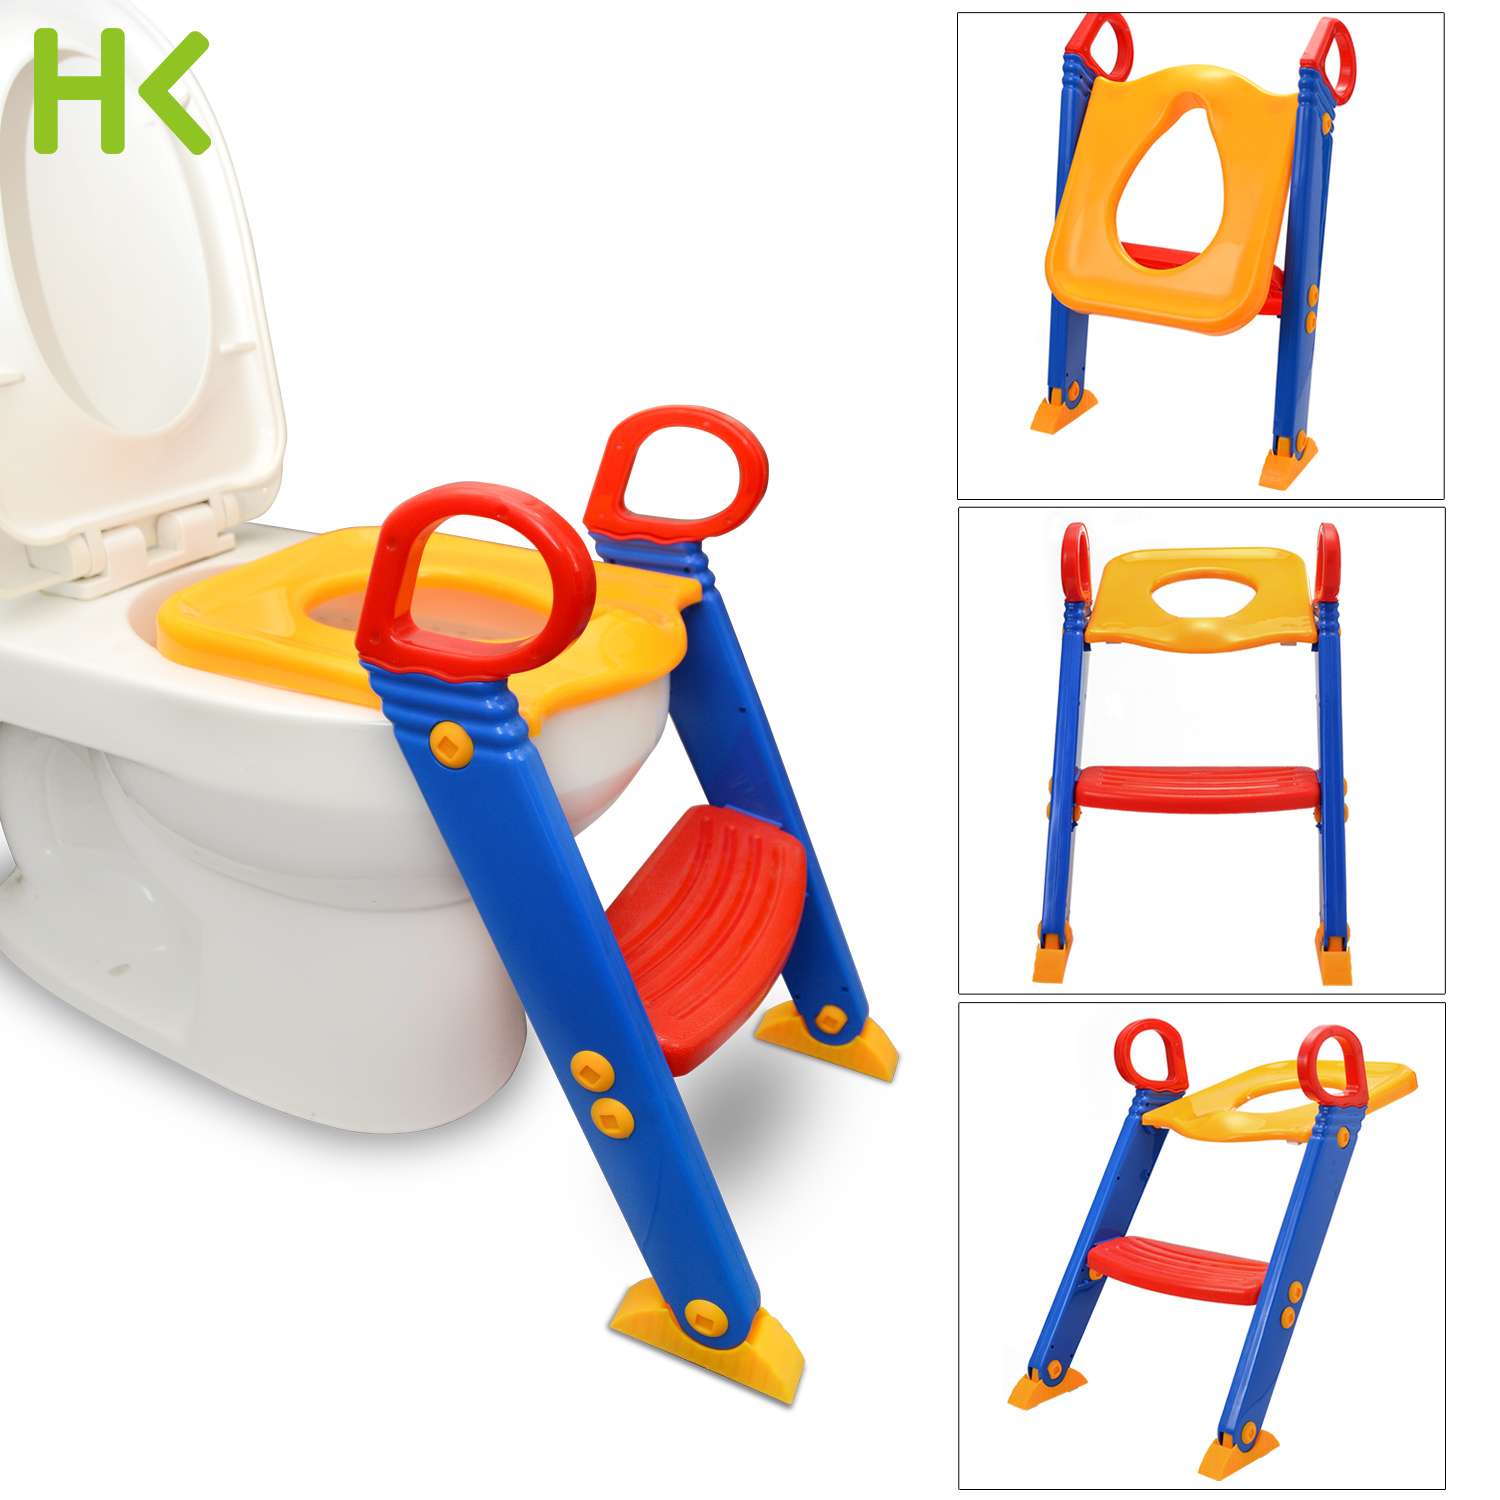 Anti Slip Potty Training Ladder Step Up Seat Toilet Contoured Cushion Training Step Stool for Kids and Toddlers